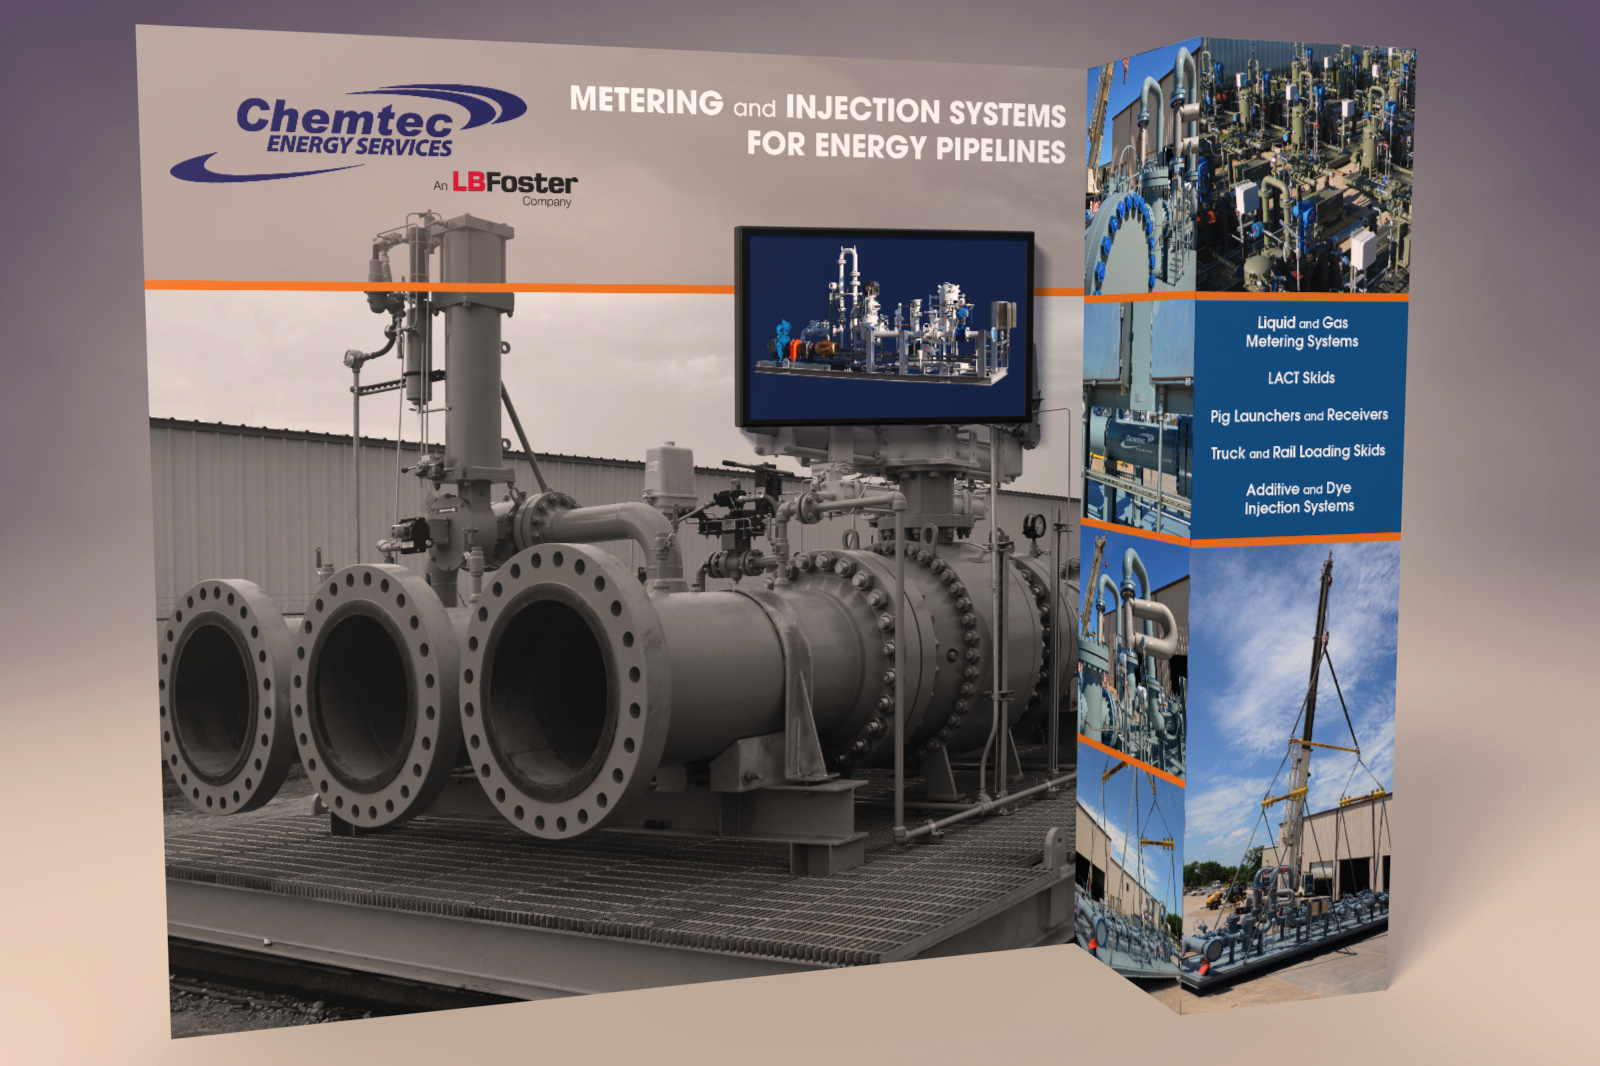 Pop Up Tradeshow Display, Ninetimes, Chemtec, Chemtec Energy Services, Photo Editing, Exhibit Design, L.B. Foster, Graphic Design, Pipeline Metering